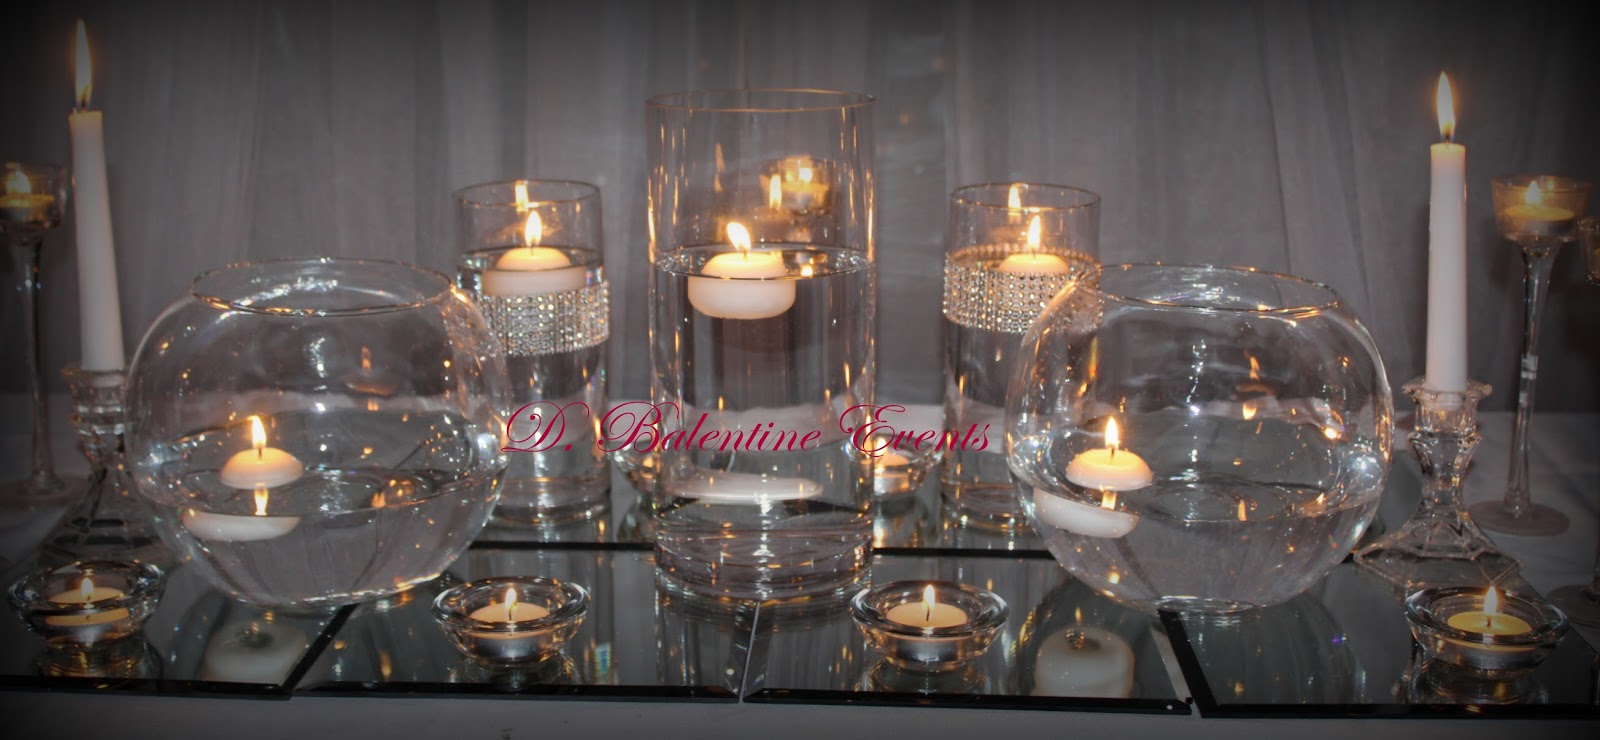 ... Centerpieces With Floating Candles, And Mirrors For The Runner. This A  Simple And Budget Friendly Idea For Your Next Table Setting Or Dinner Party.